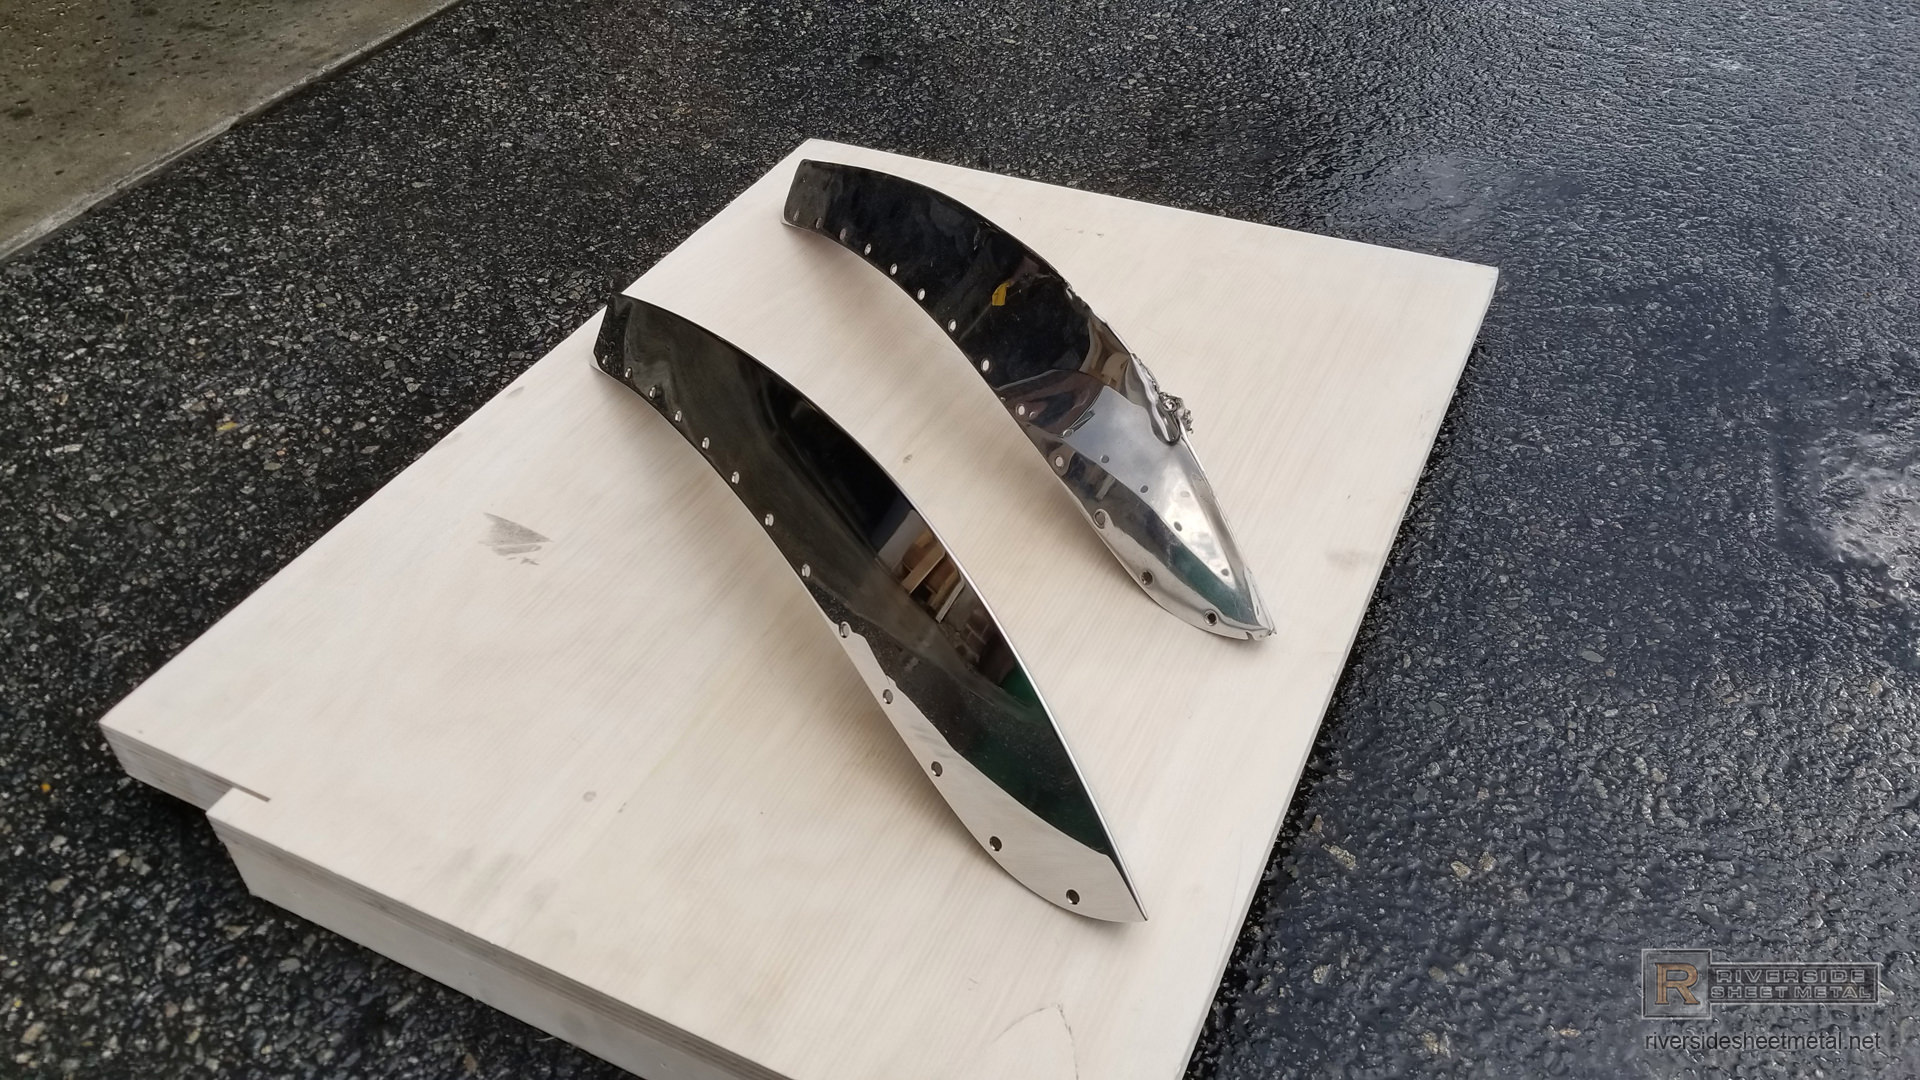 Stainless Steel Custom Boat Bow Guard Protection